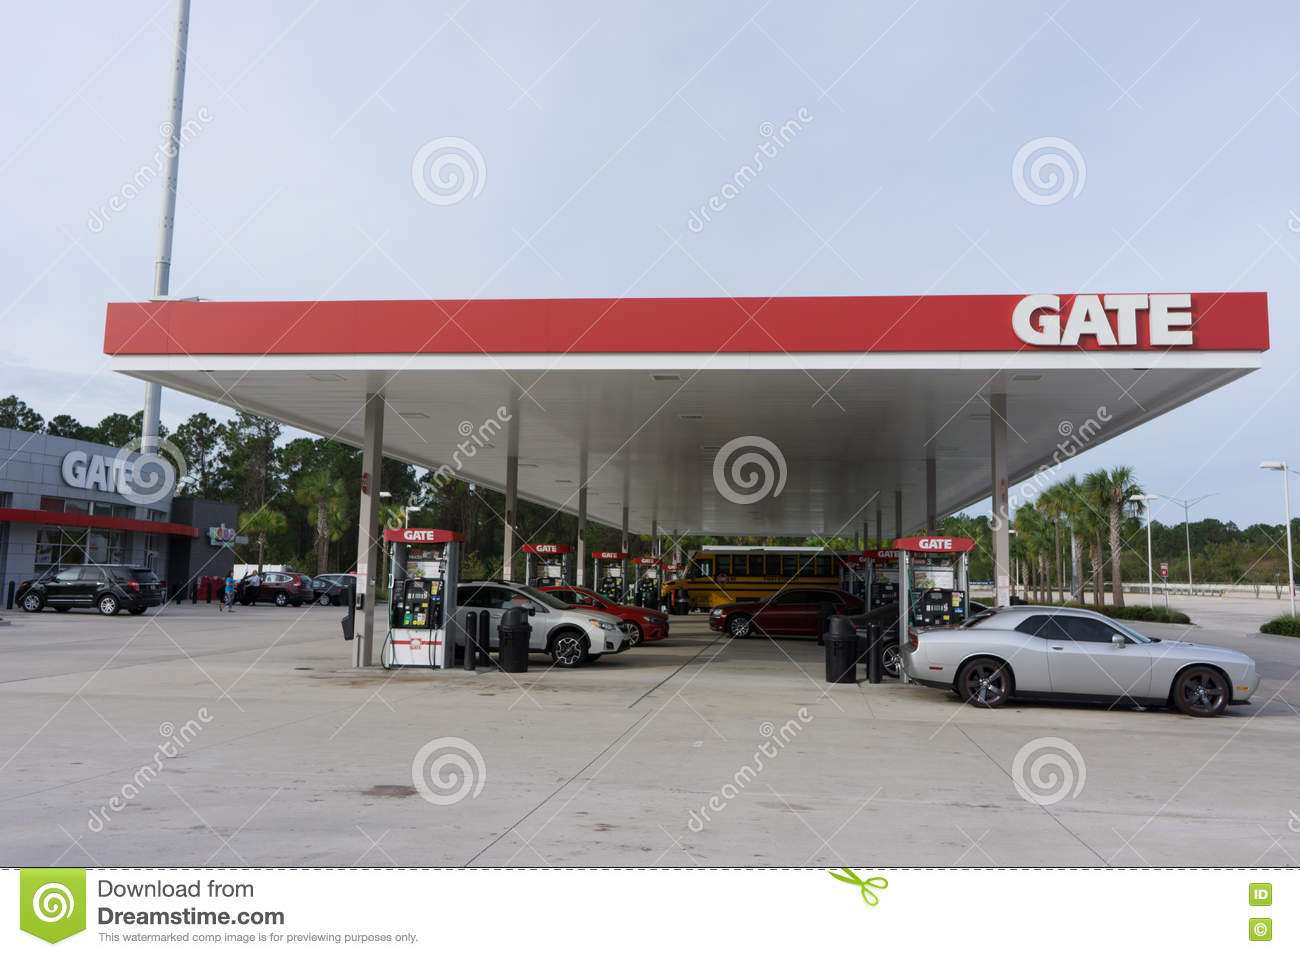 Gate Gas Station Editorial Photo - Image: 79646166